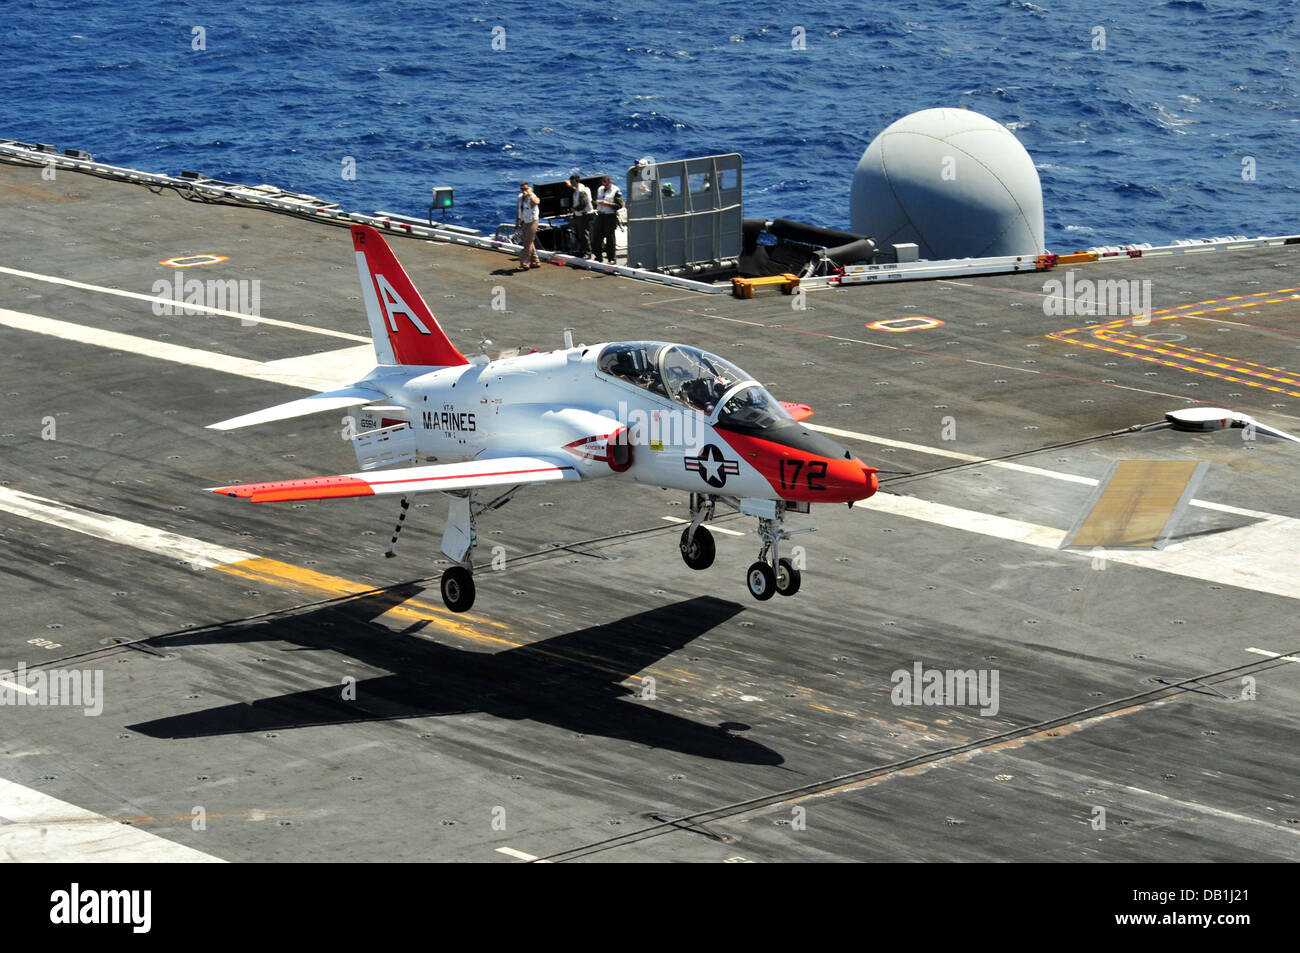 A T-45C Goshawk training aircraft from the Tigers of Training Wing 1 approaches the flight deck of the aircraft - Stock Image